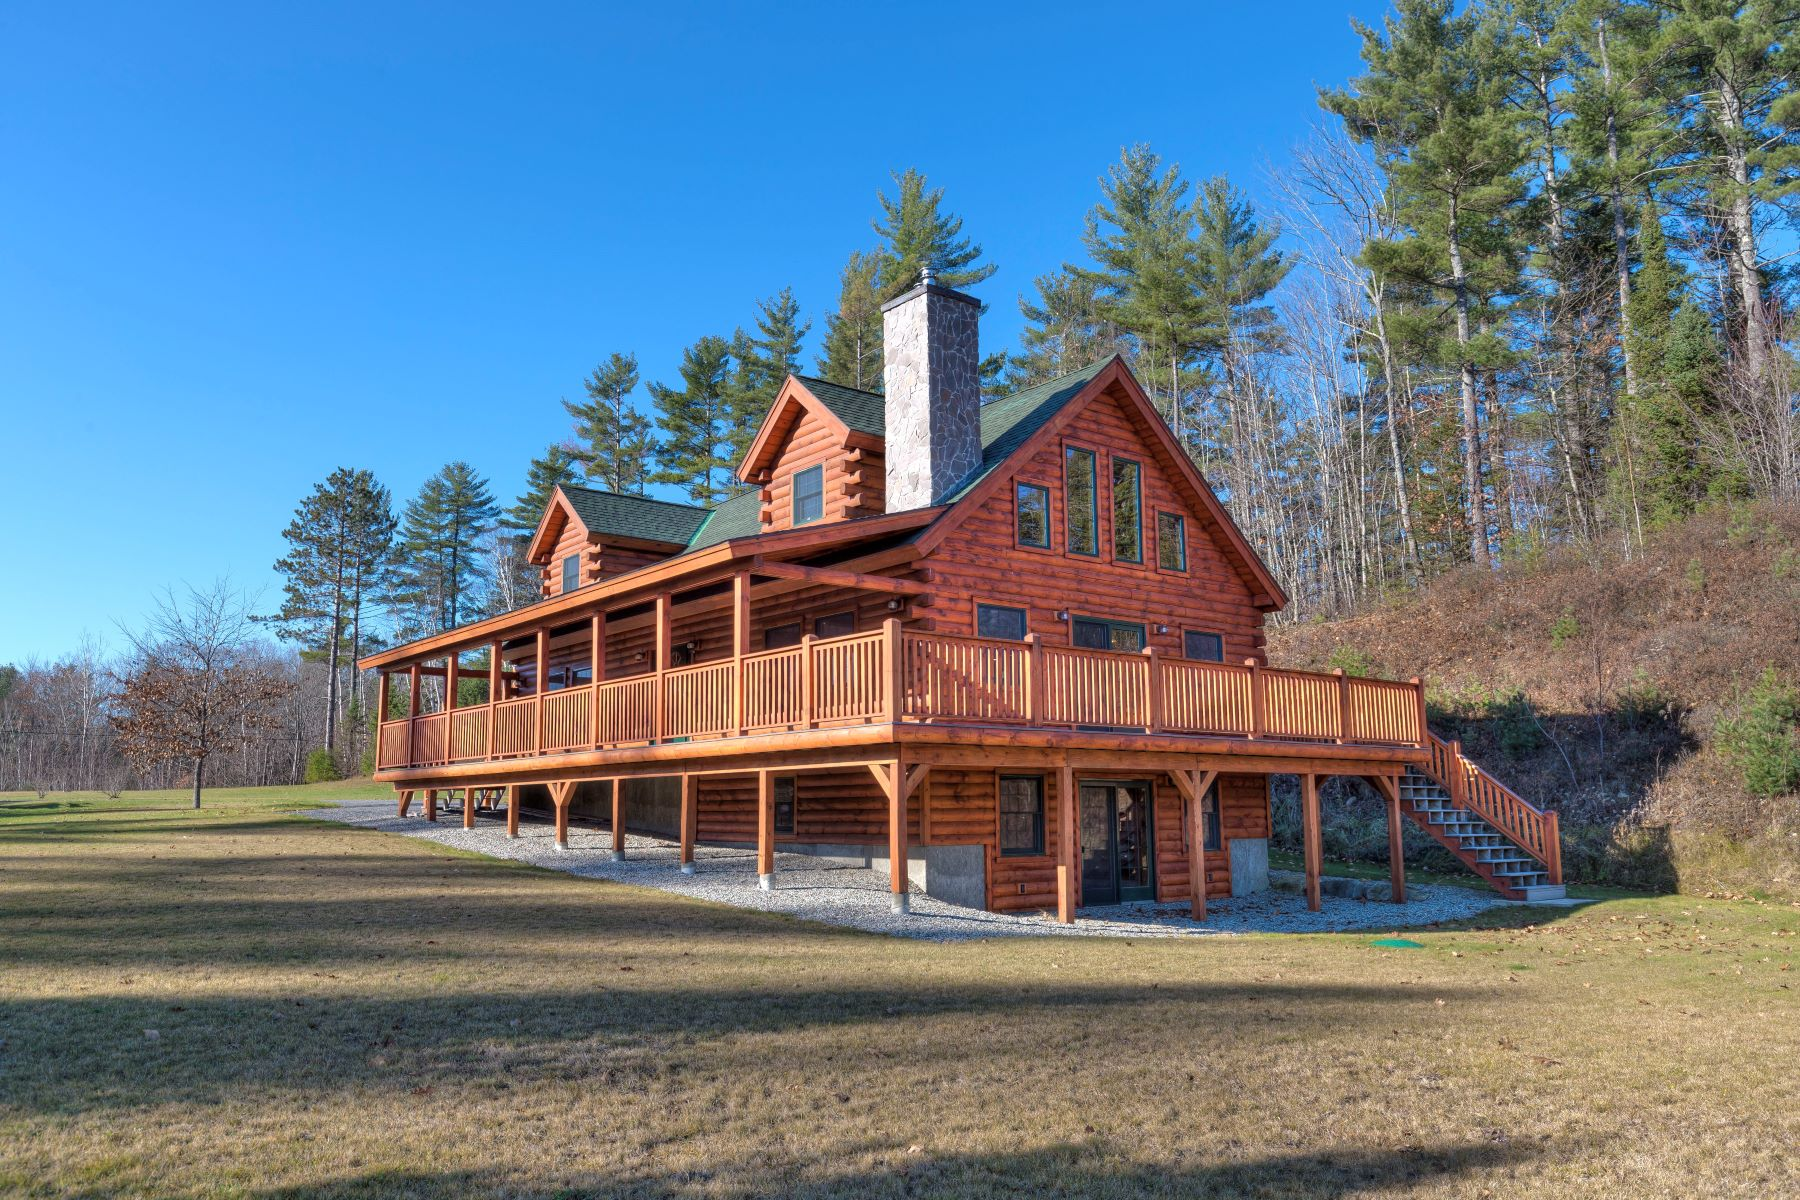 Single Family Home for Sale at New log home with views in Bath 9 Fenn Way Cir Bath, New Hampshire, 03740 United States